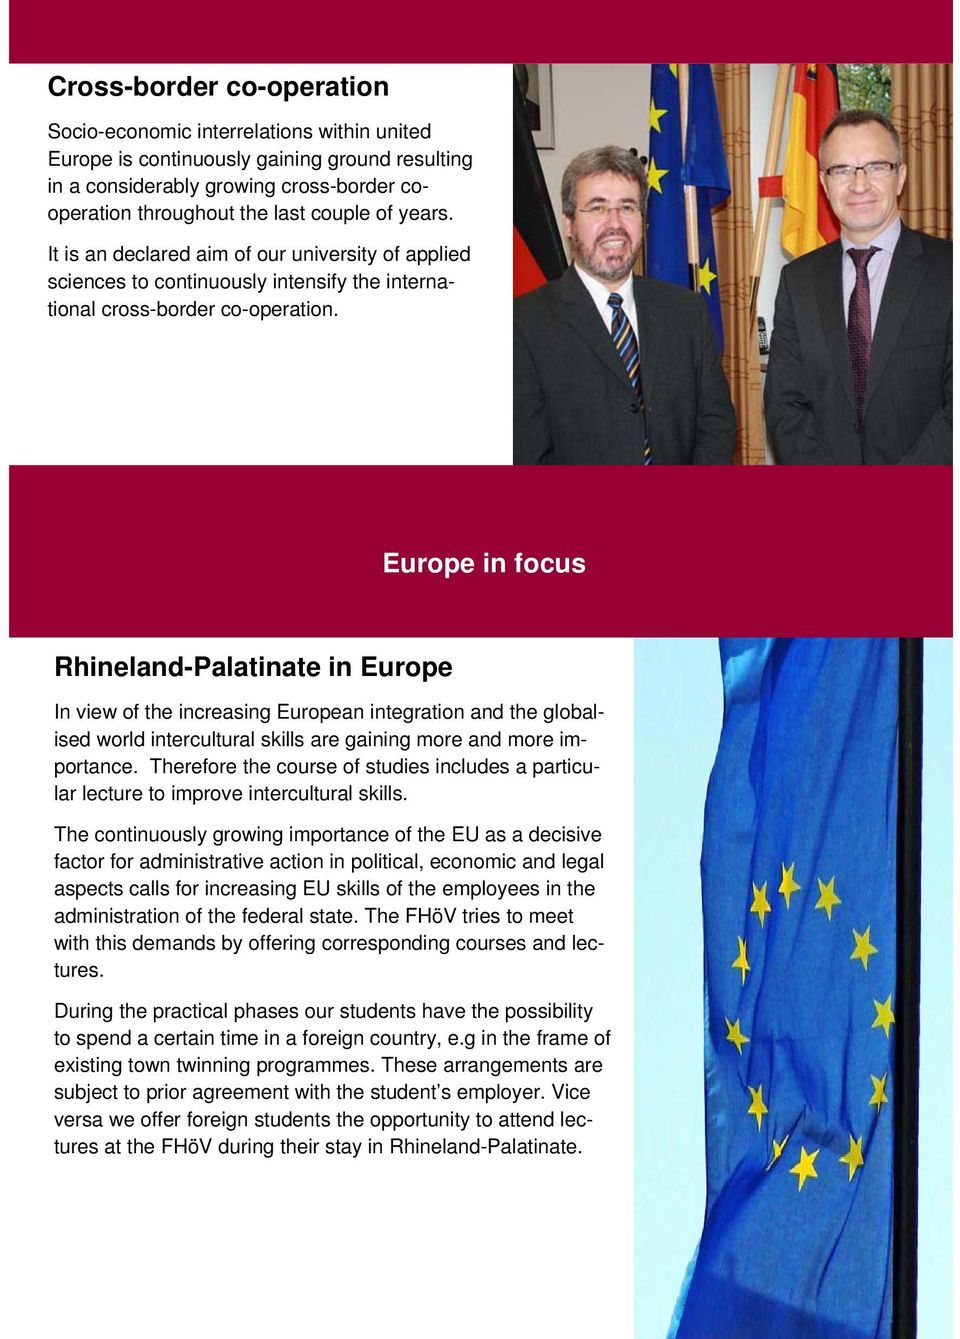 Europa im Blick Europe in focus Rhineland-Palatinate in Europe In view of the increasing European integration and the globalised world intercultural skills are gaining more and more importance.